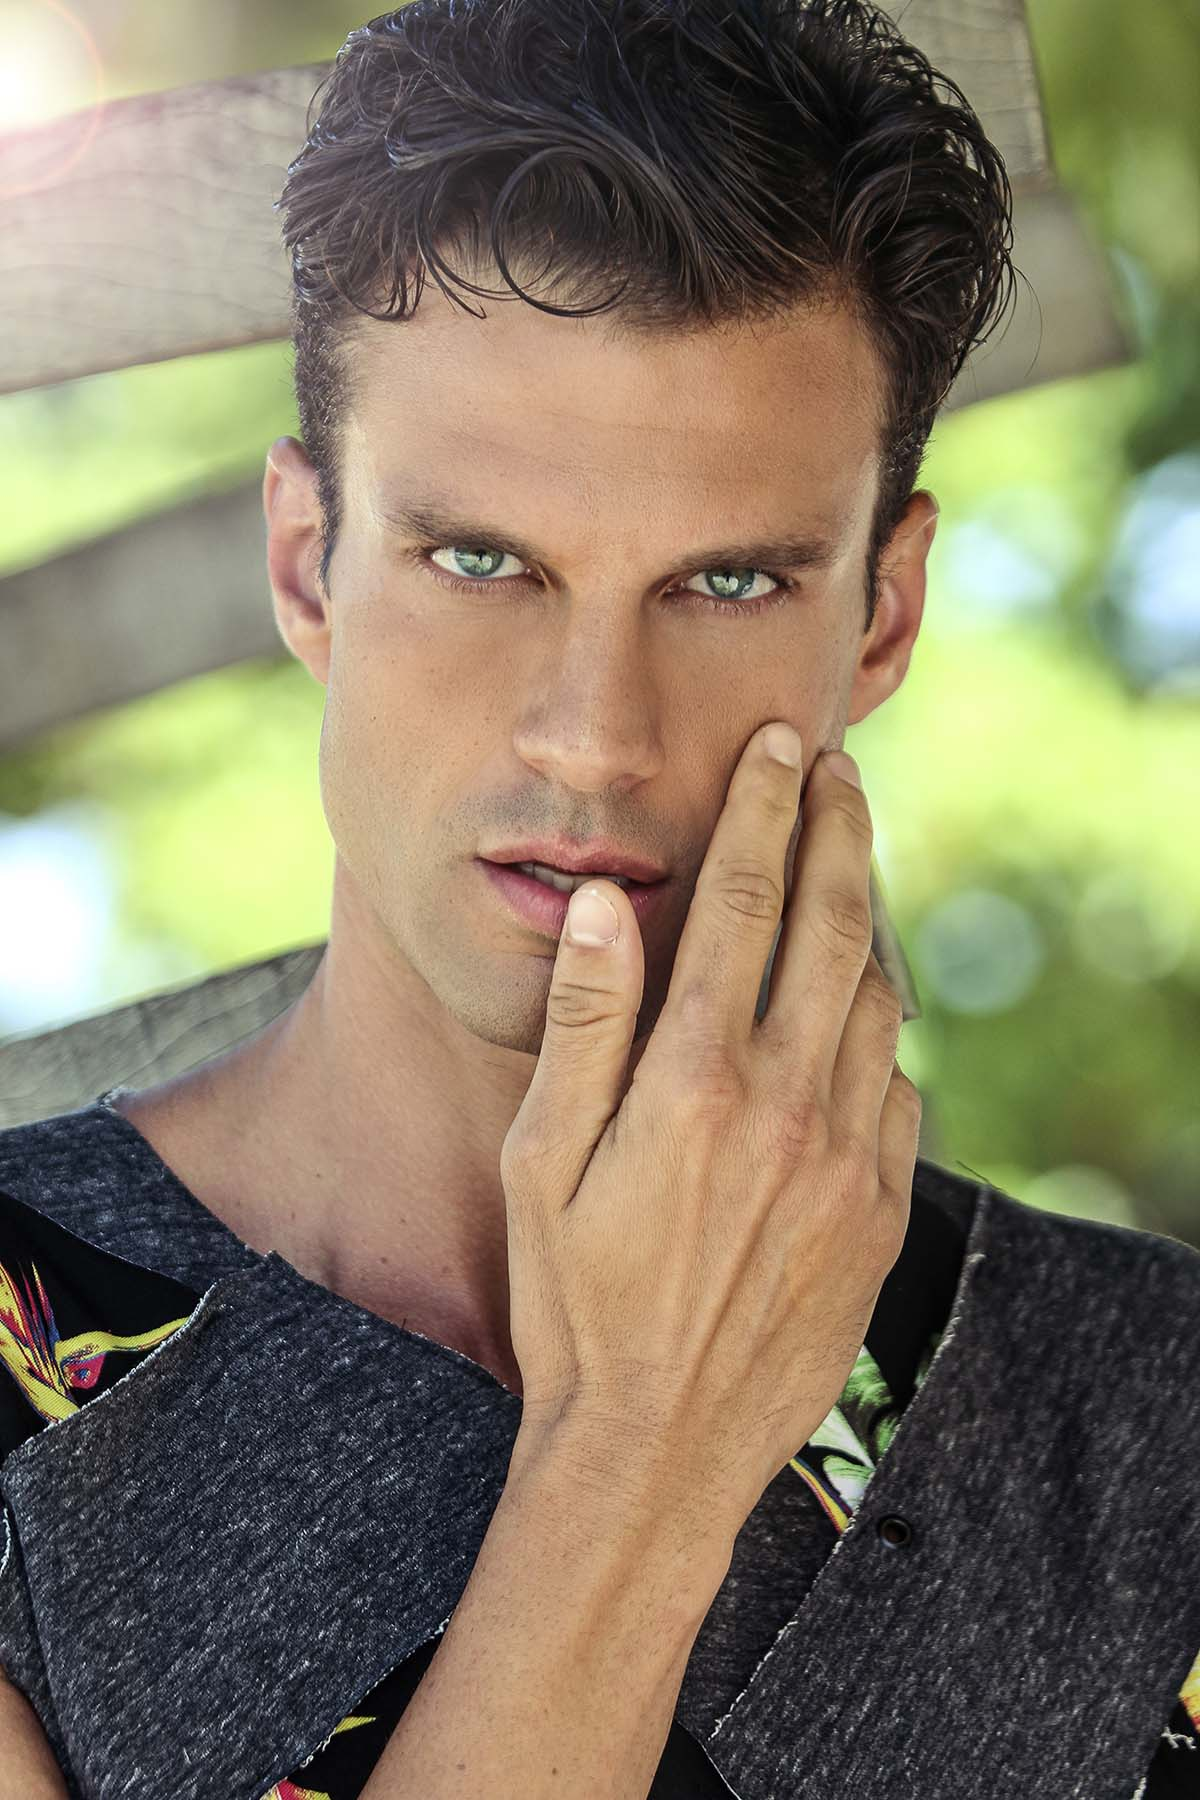 Junior Arruda by Marcio Farias for Brazilian Male Model